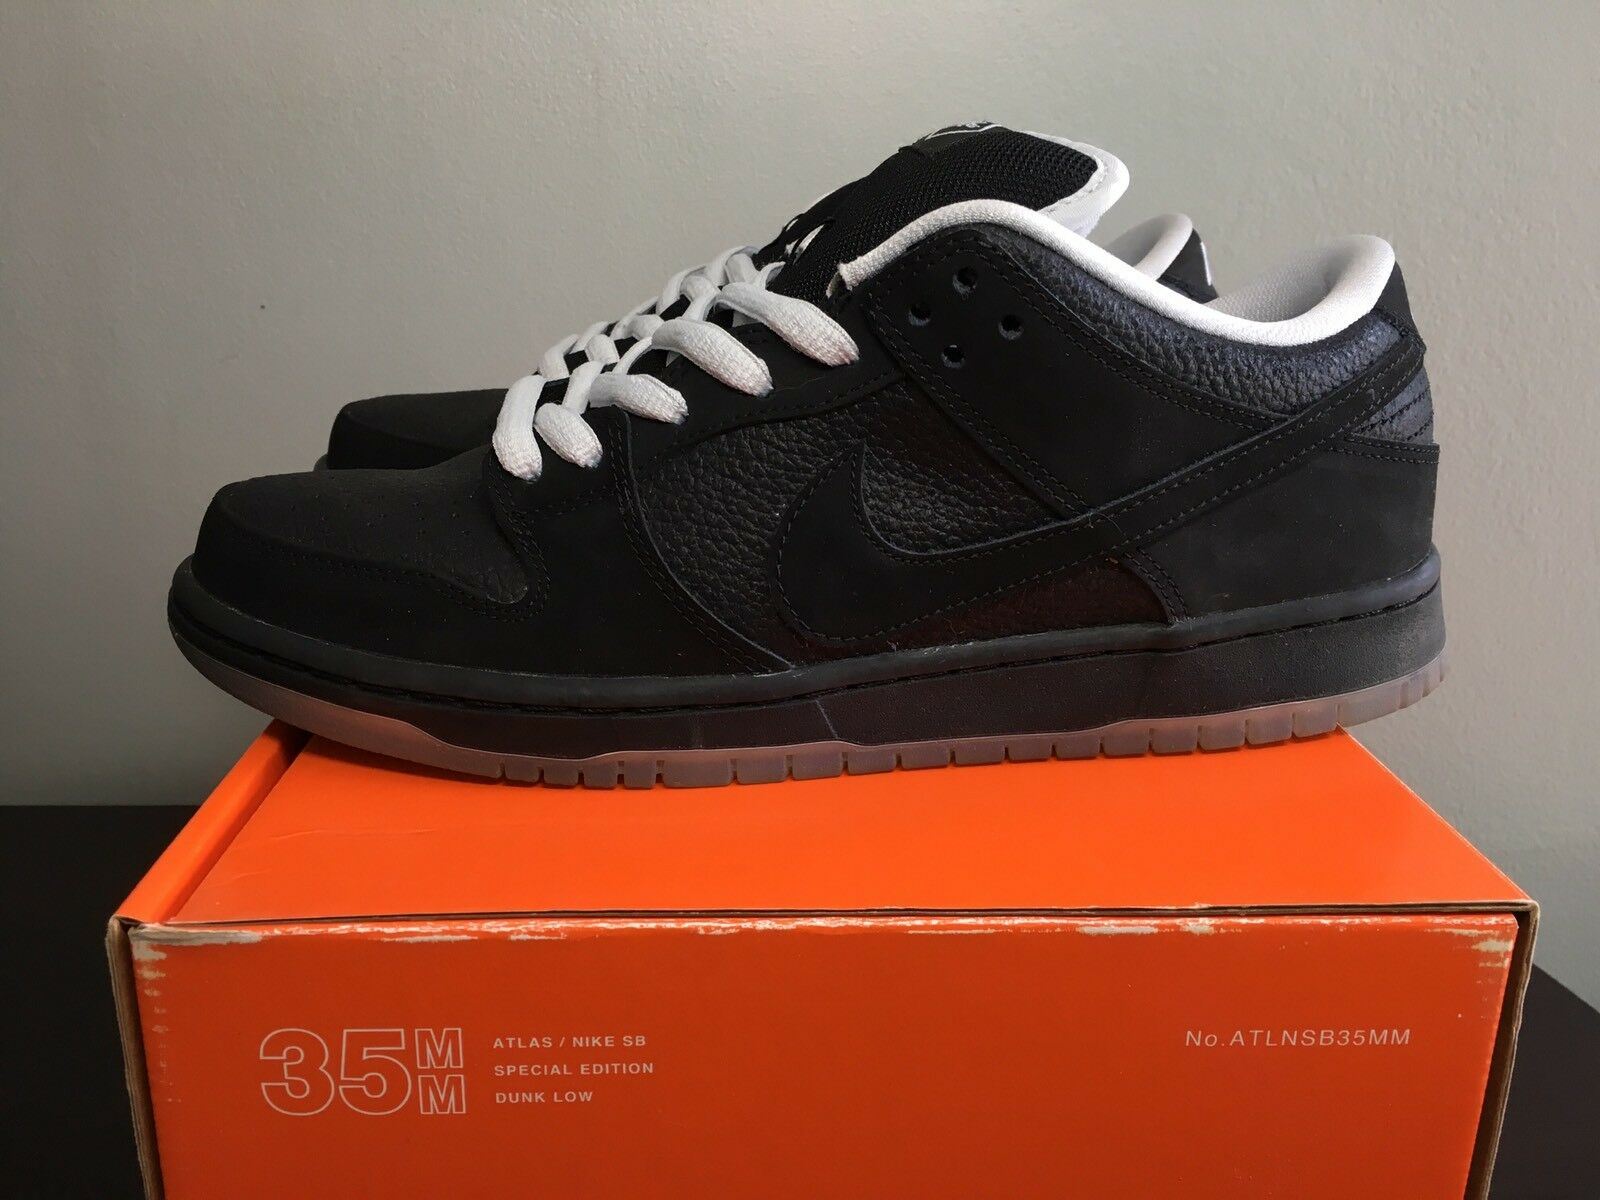 Nike SB Dunk Low QS Atlas Black In Store Only ISO 504750-066 Size 10